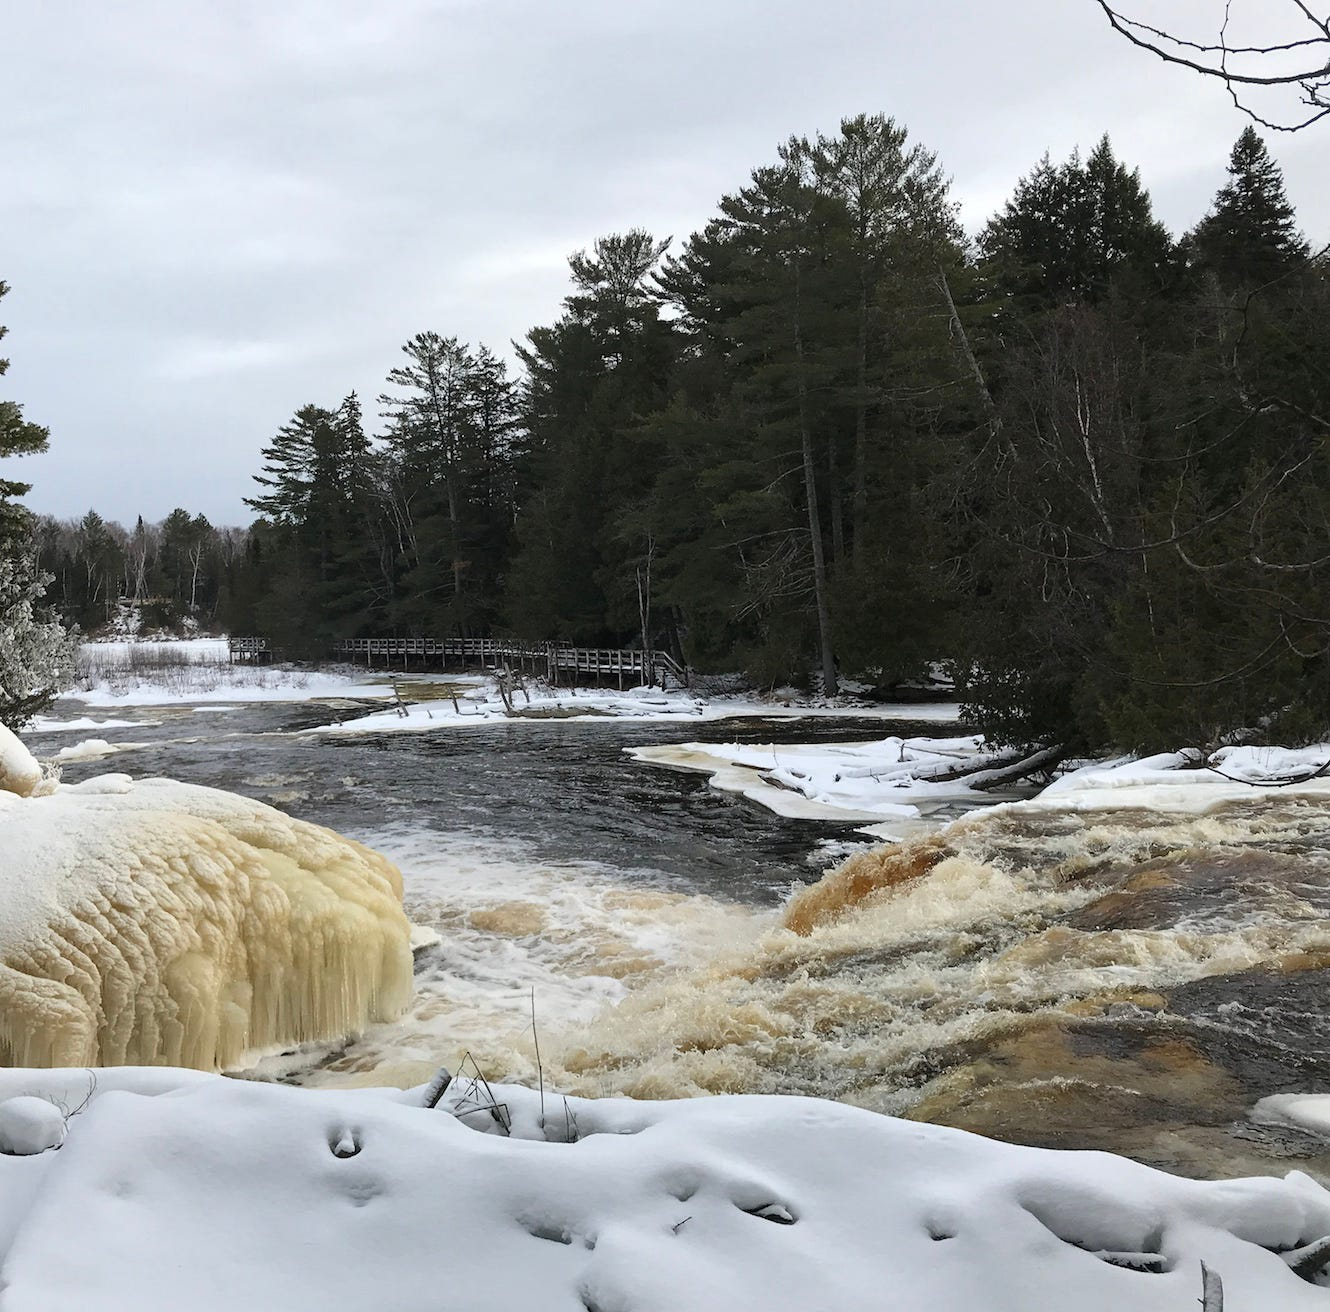 Roads reopen near Tahquamenon Falls State Park after police incident